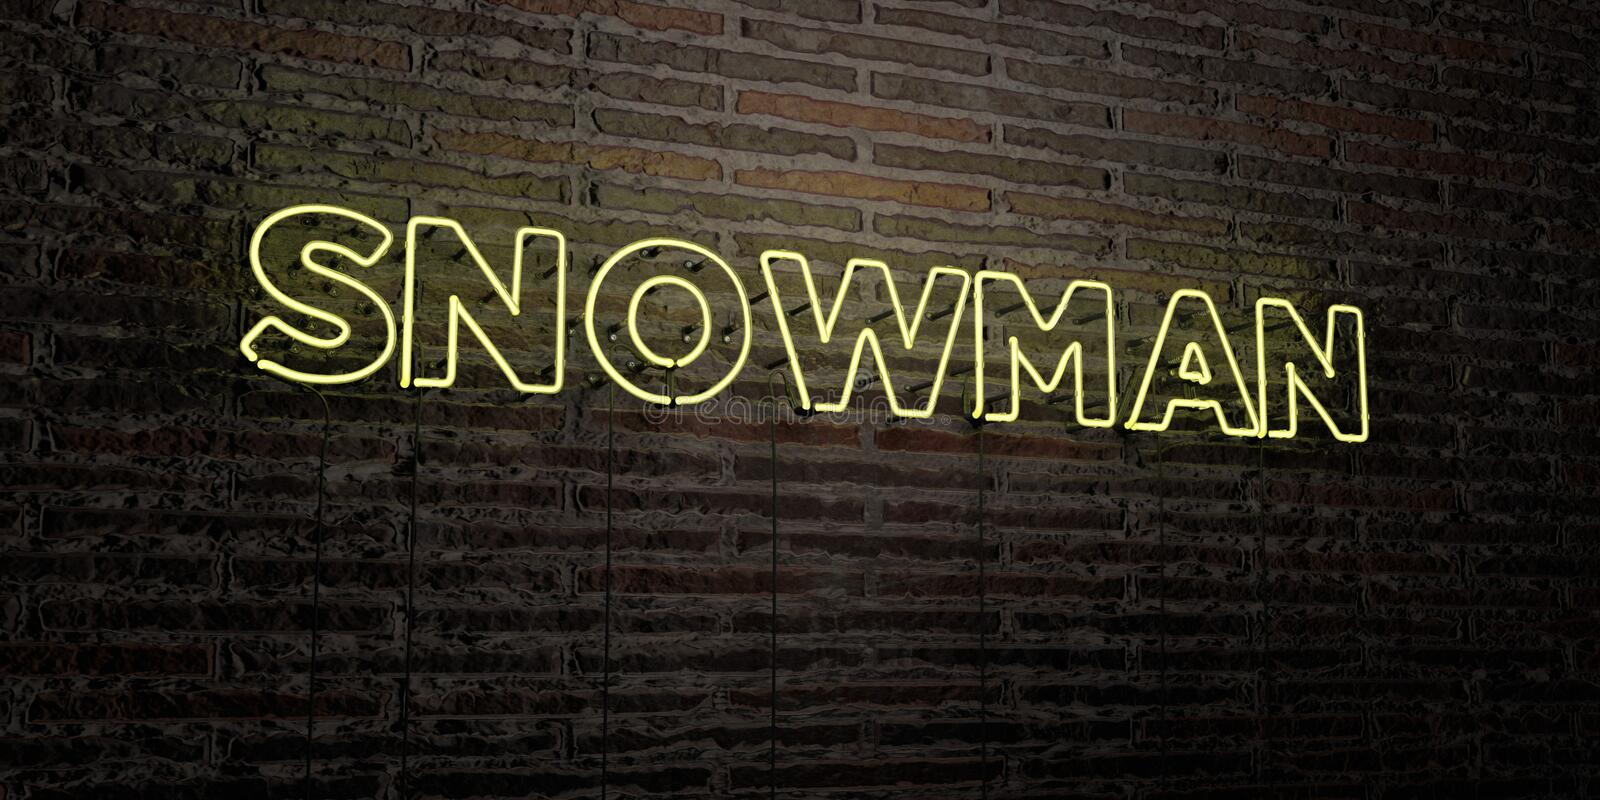 SNOWMAN -Realistic Neon Sign on Brick Wall background - 3D rendered royalty free stock image stock illustration